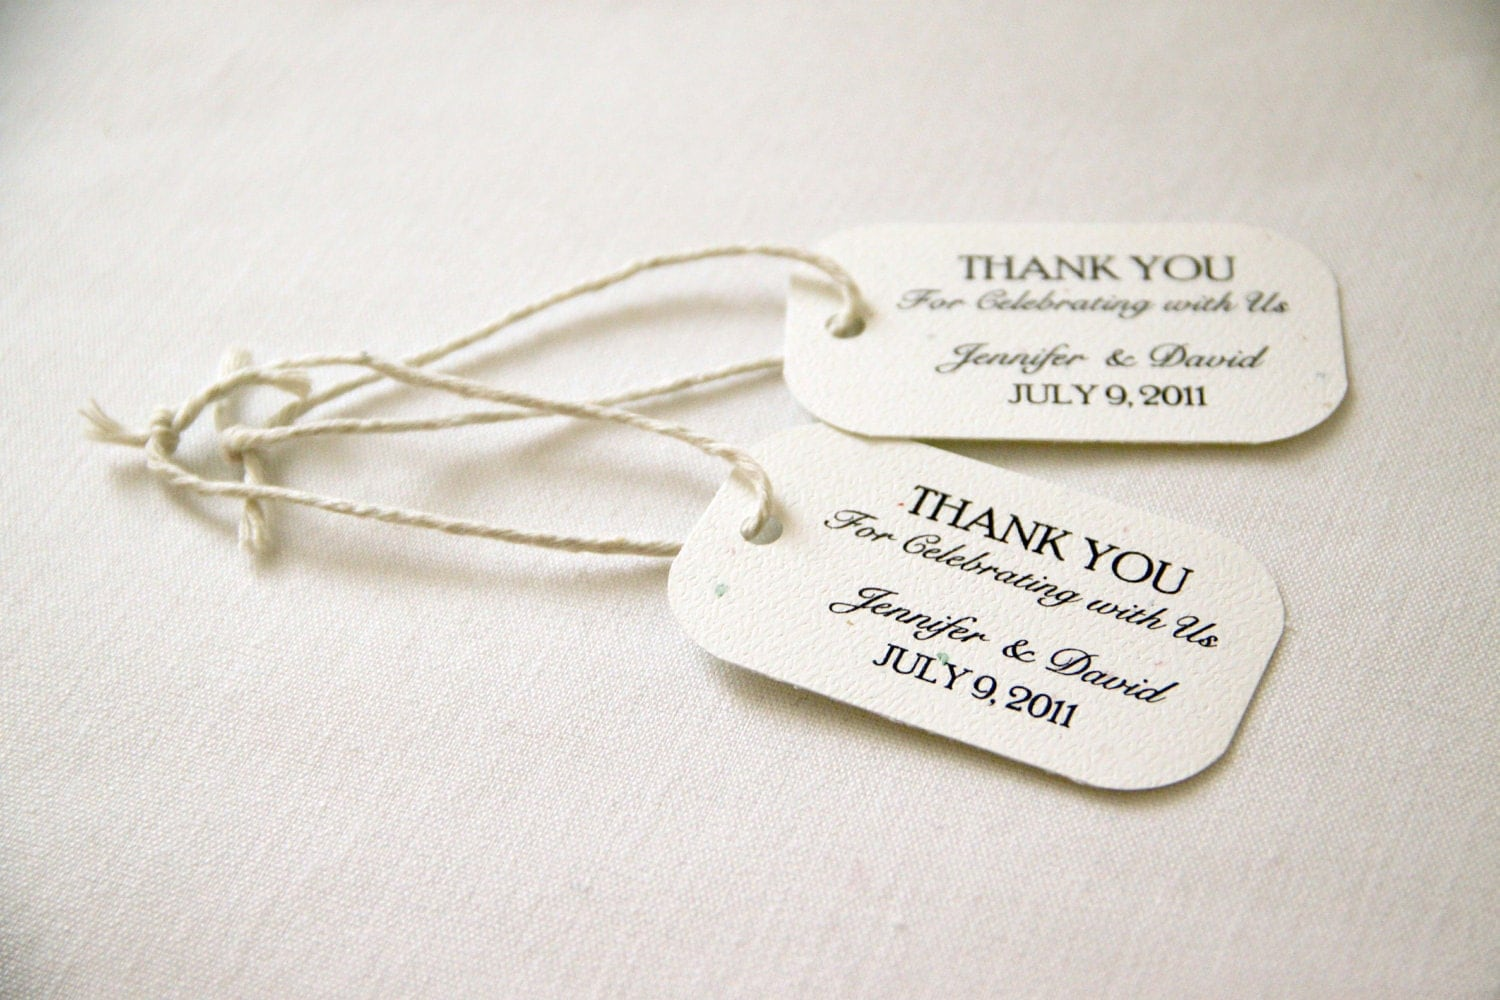 How To Make Wedding Gift Tags : 150 Mini Wedding Favor Gift Tags Classic Thank You